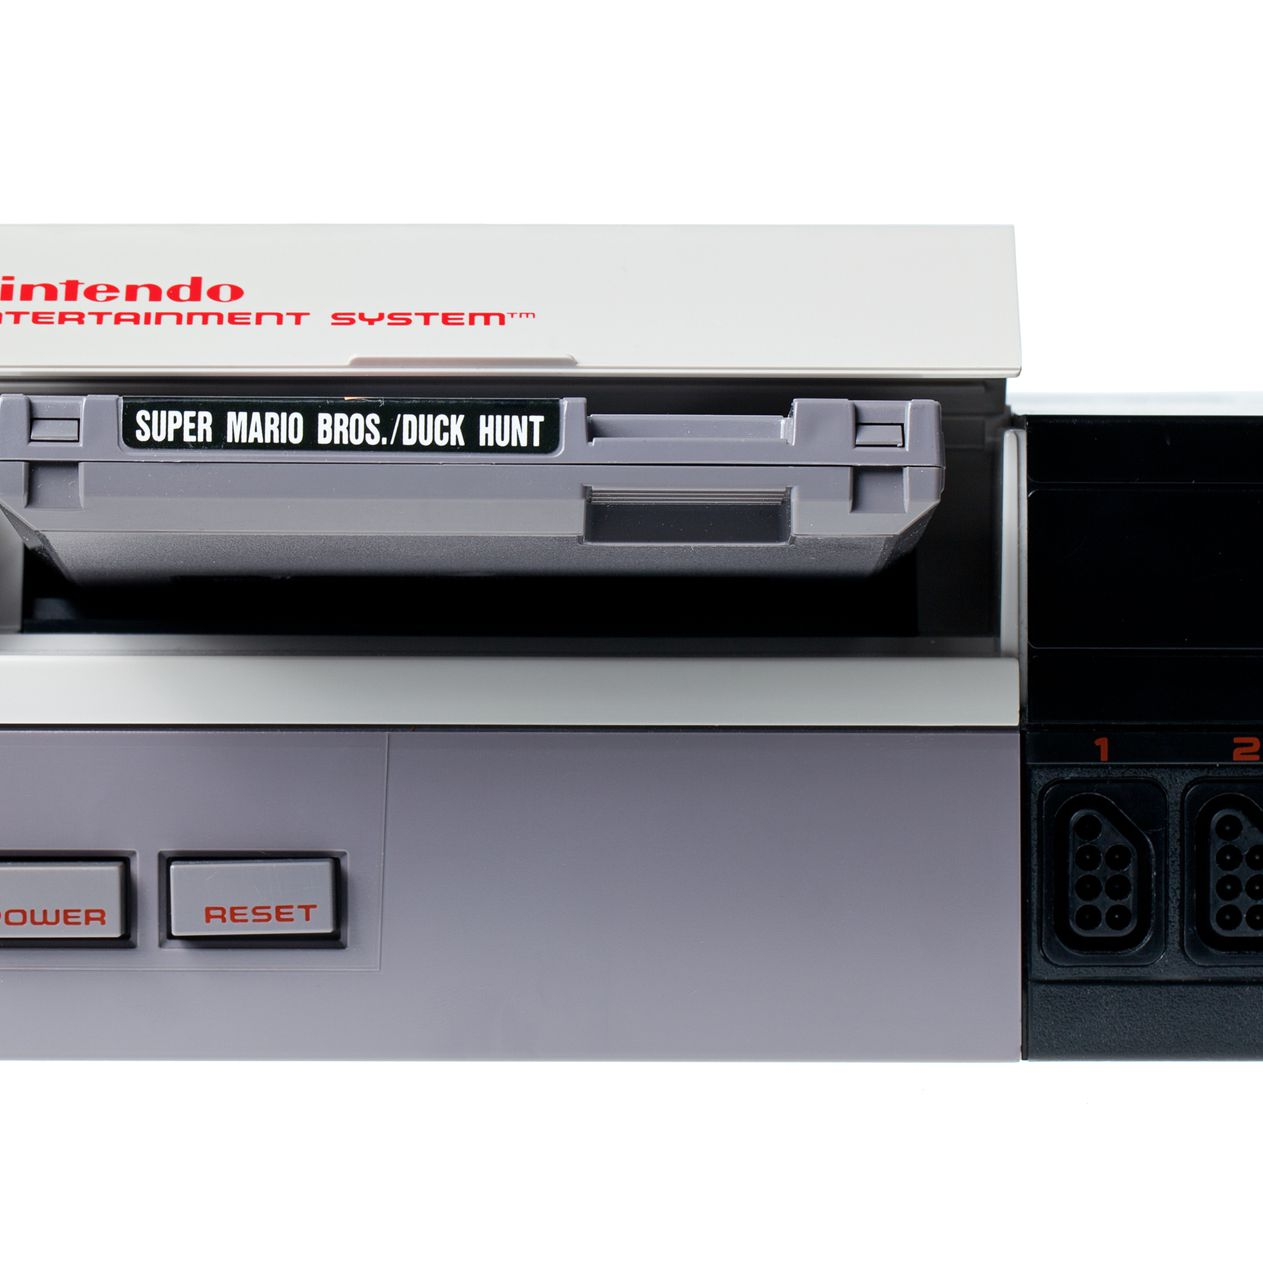 NES Cheat Codes and Walkthroughs